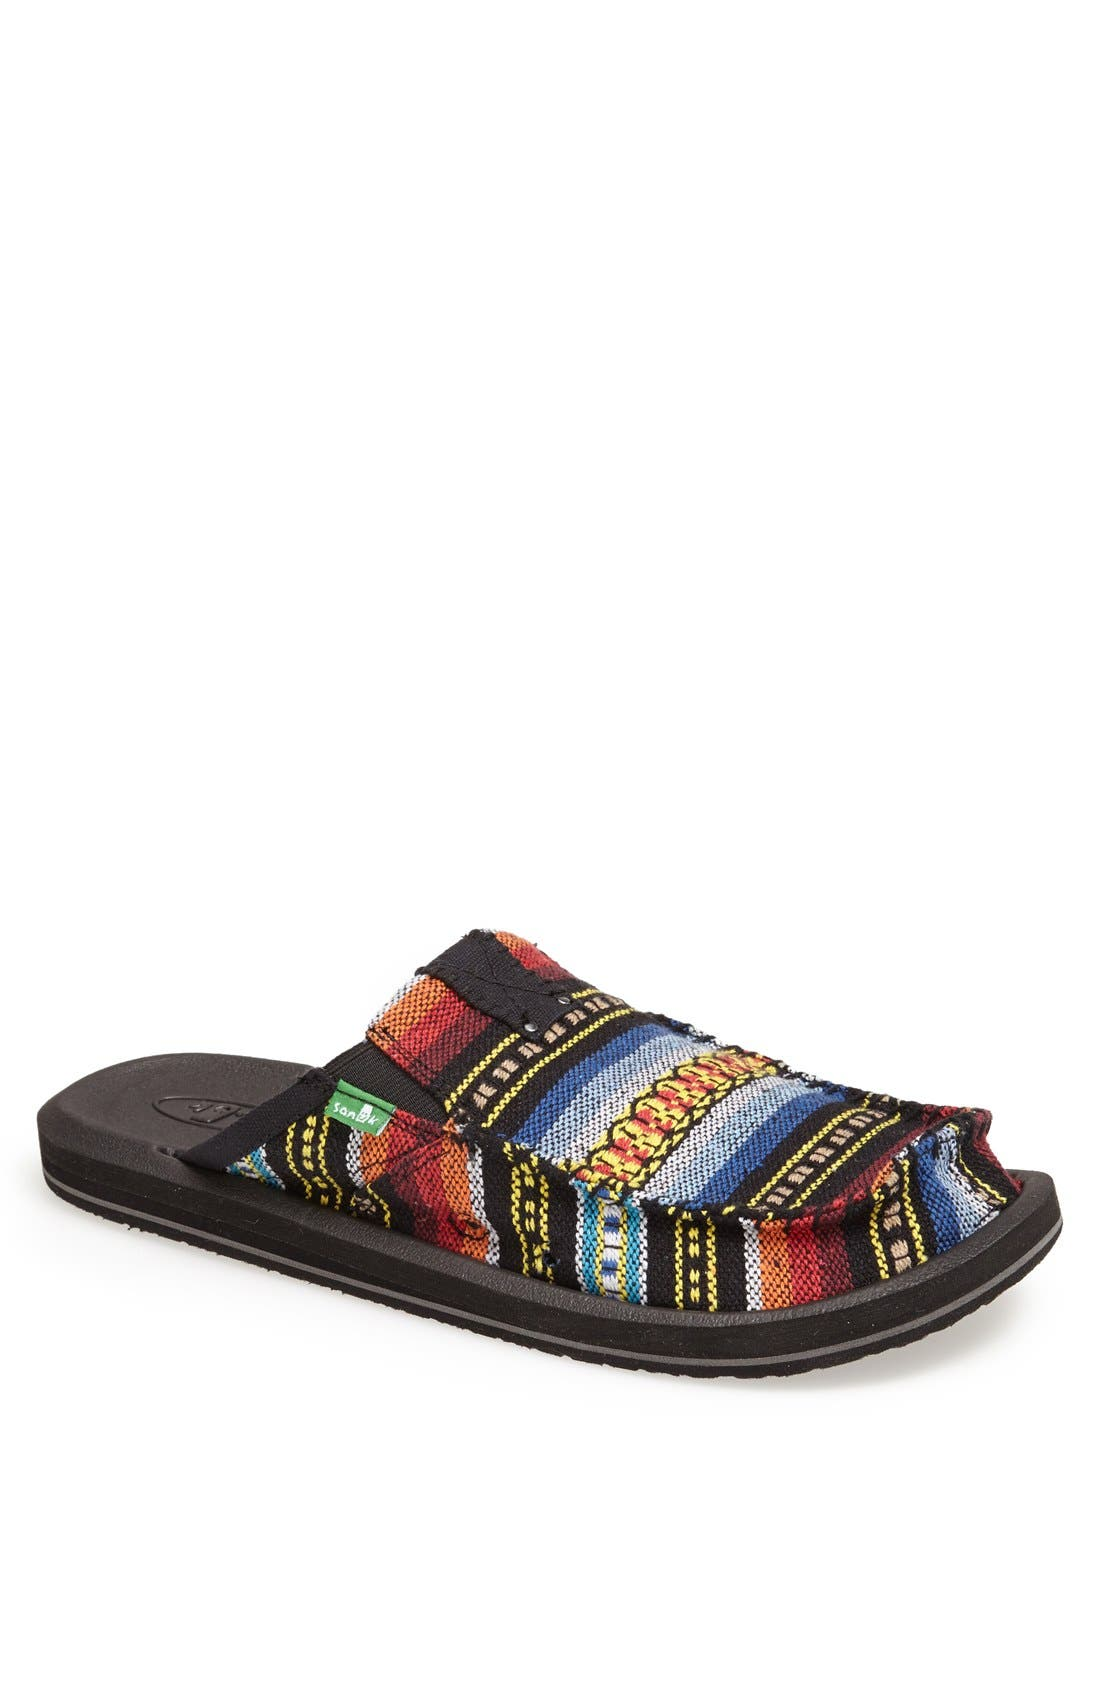 Main Image - Sanuk 'You Got My Back II' Sandal (Men)